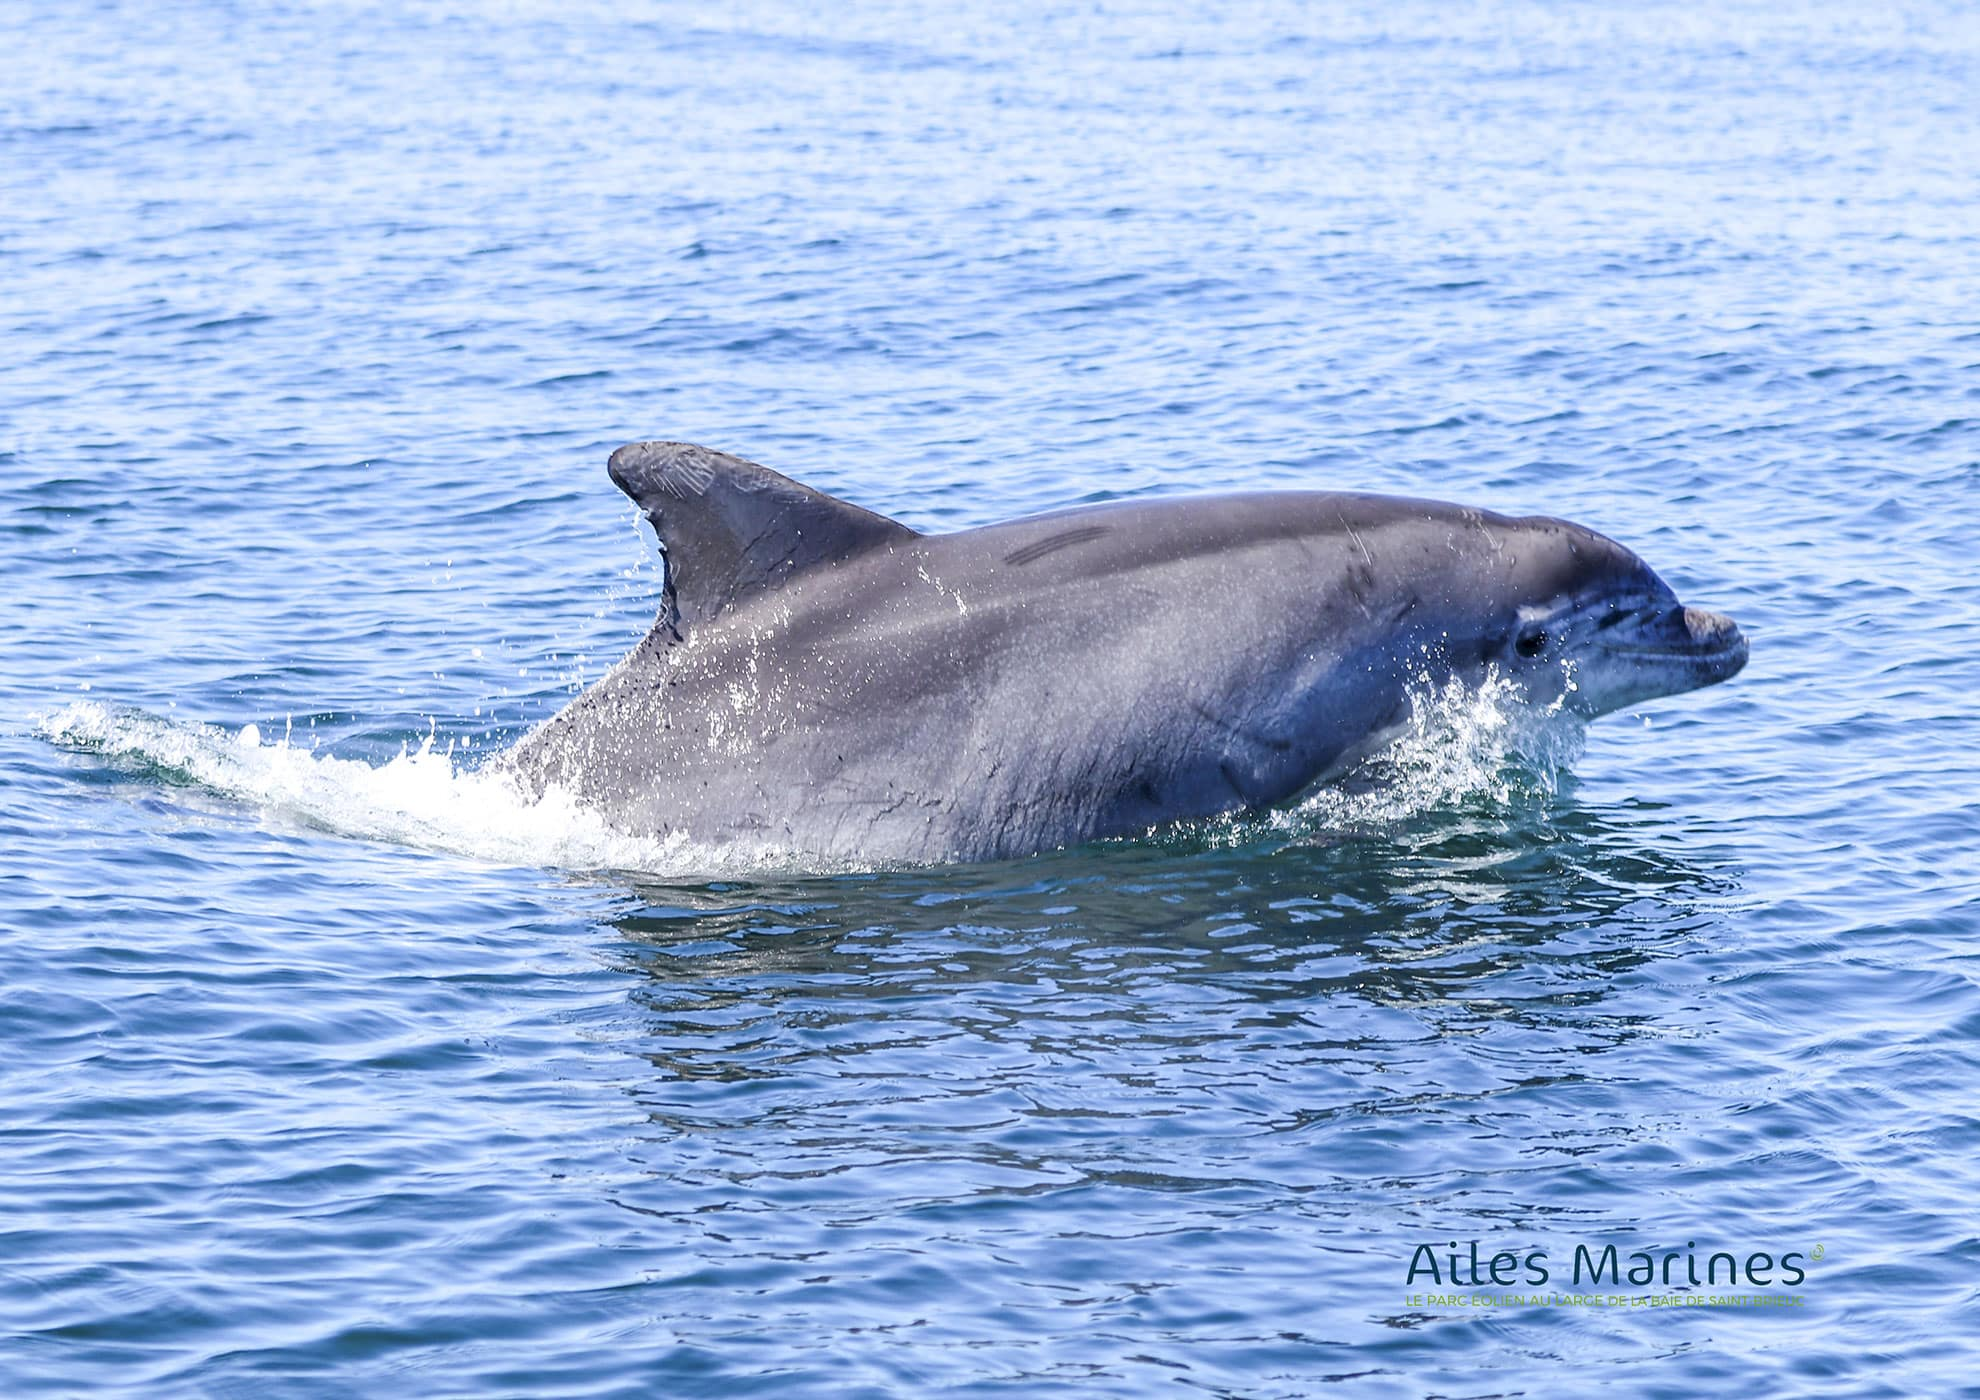 ailes-marines-dolphin-jumping-off-water